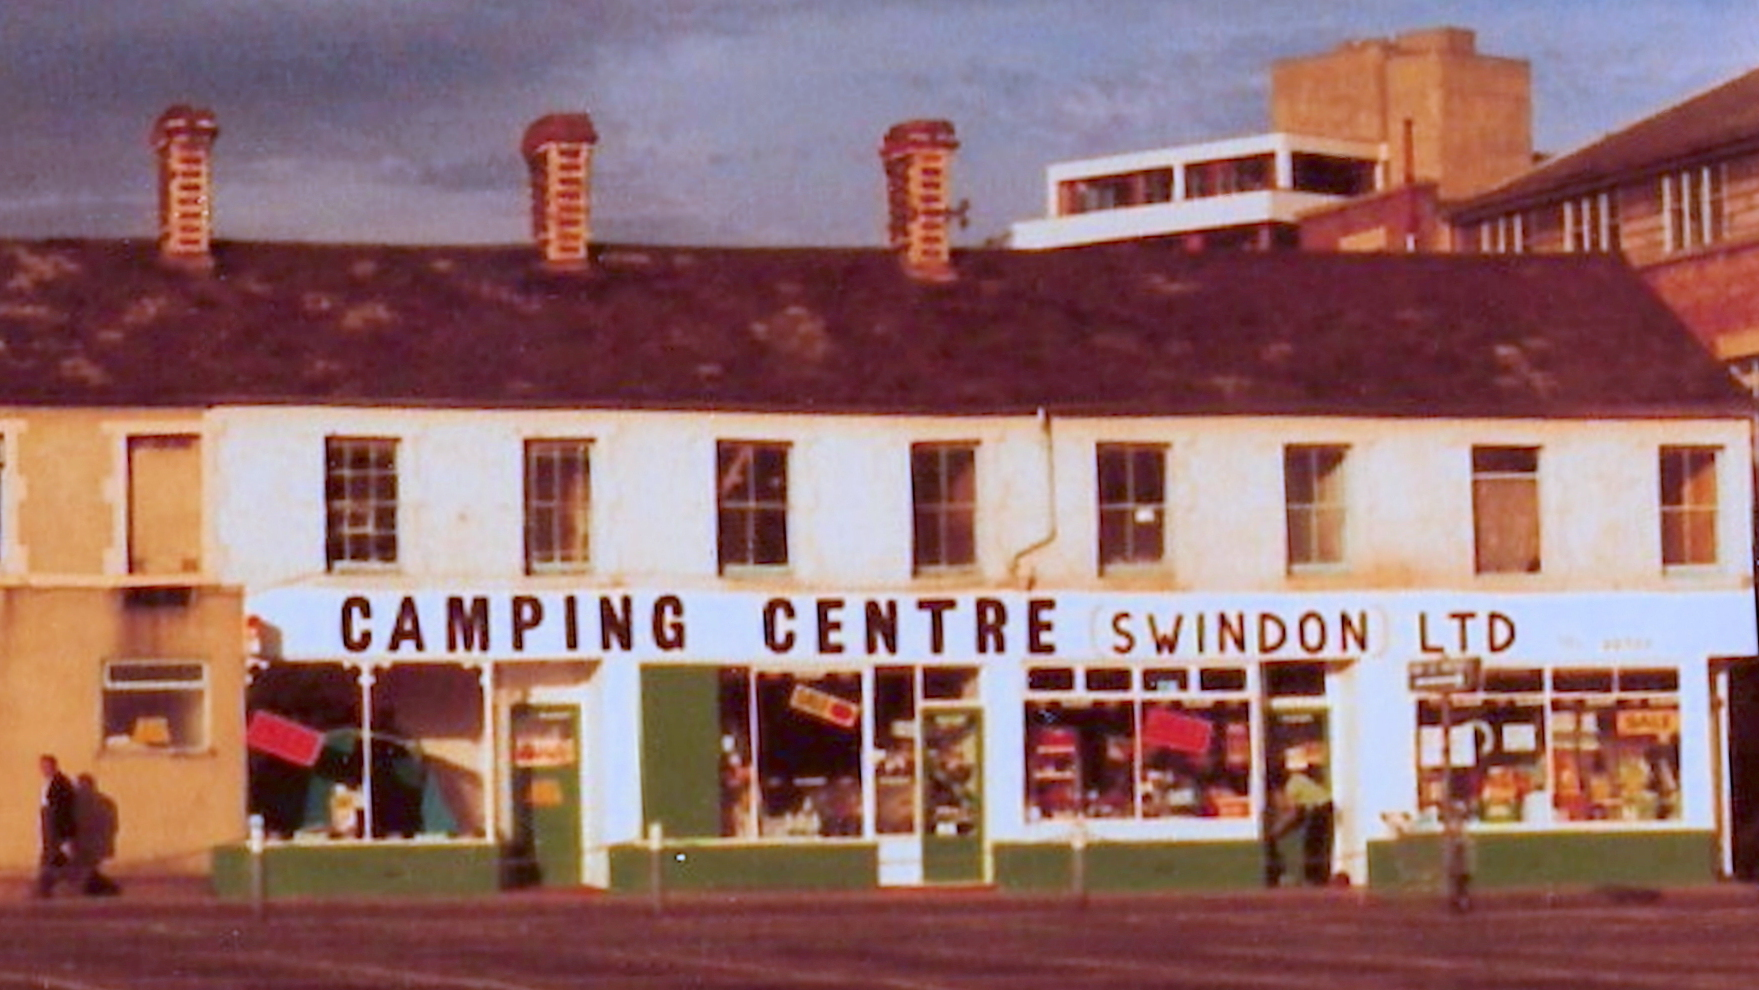 Camping Centre Swindon